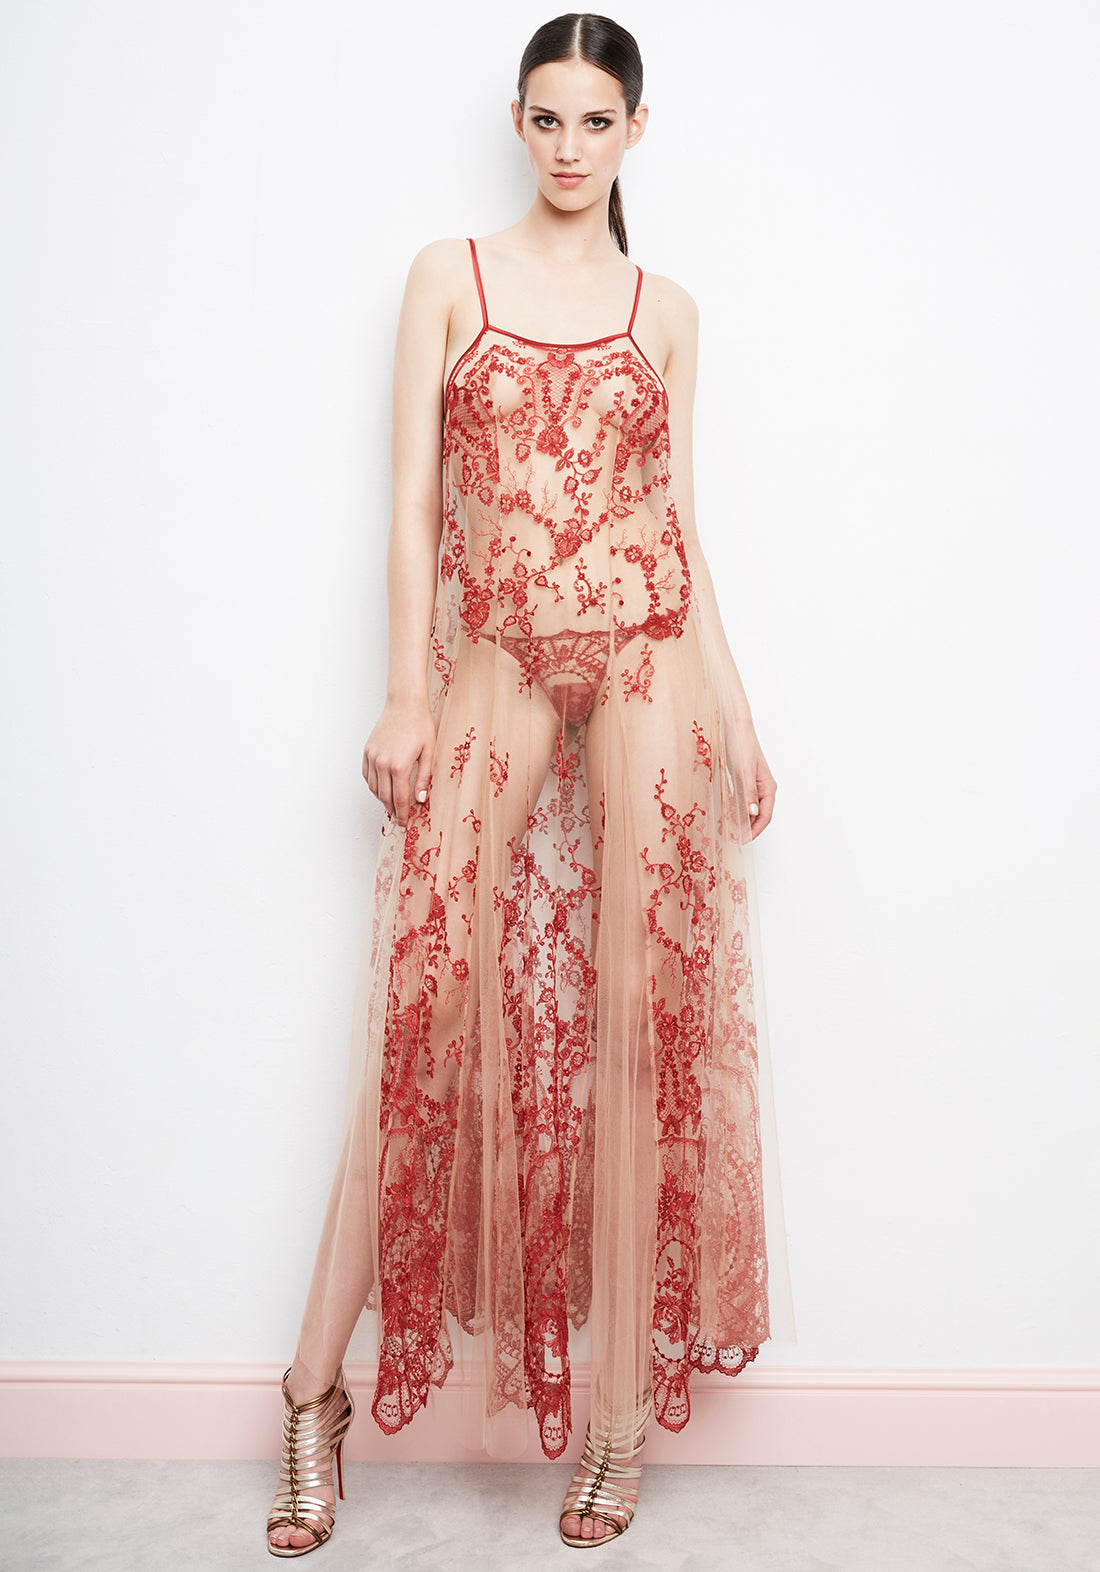 La Naissance d'Aphrodite Slip Dress in Ruby Red